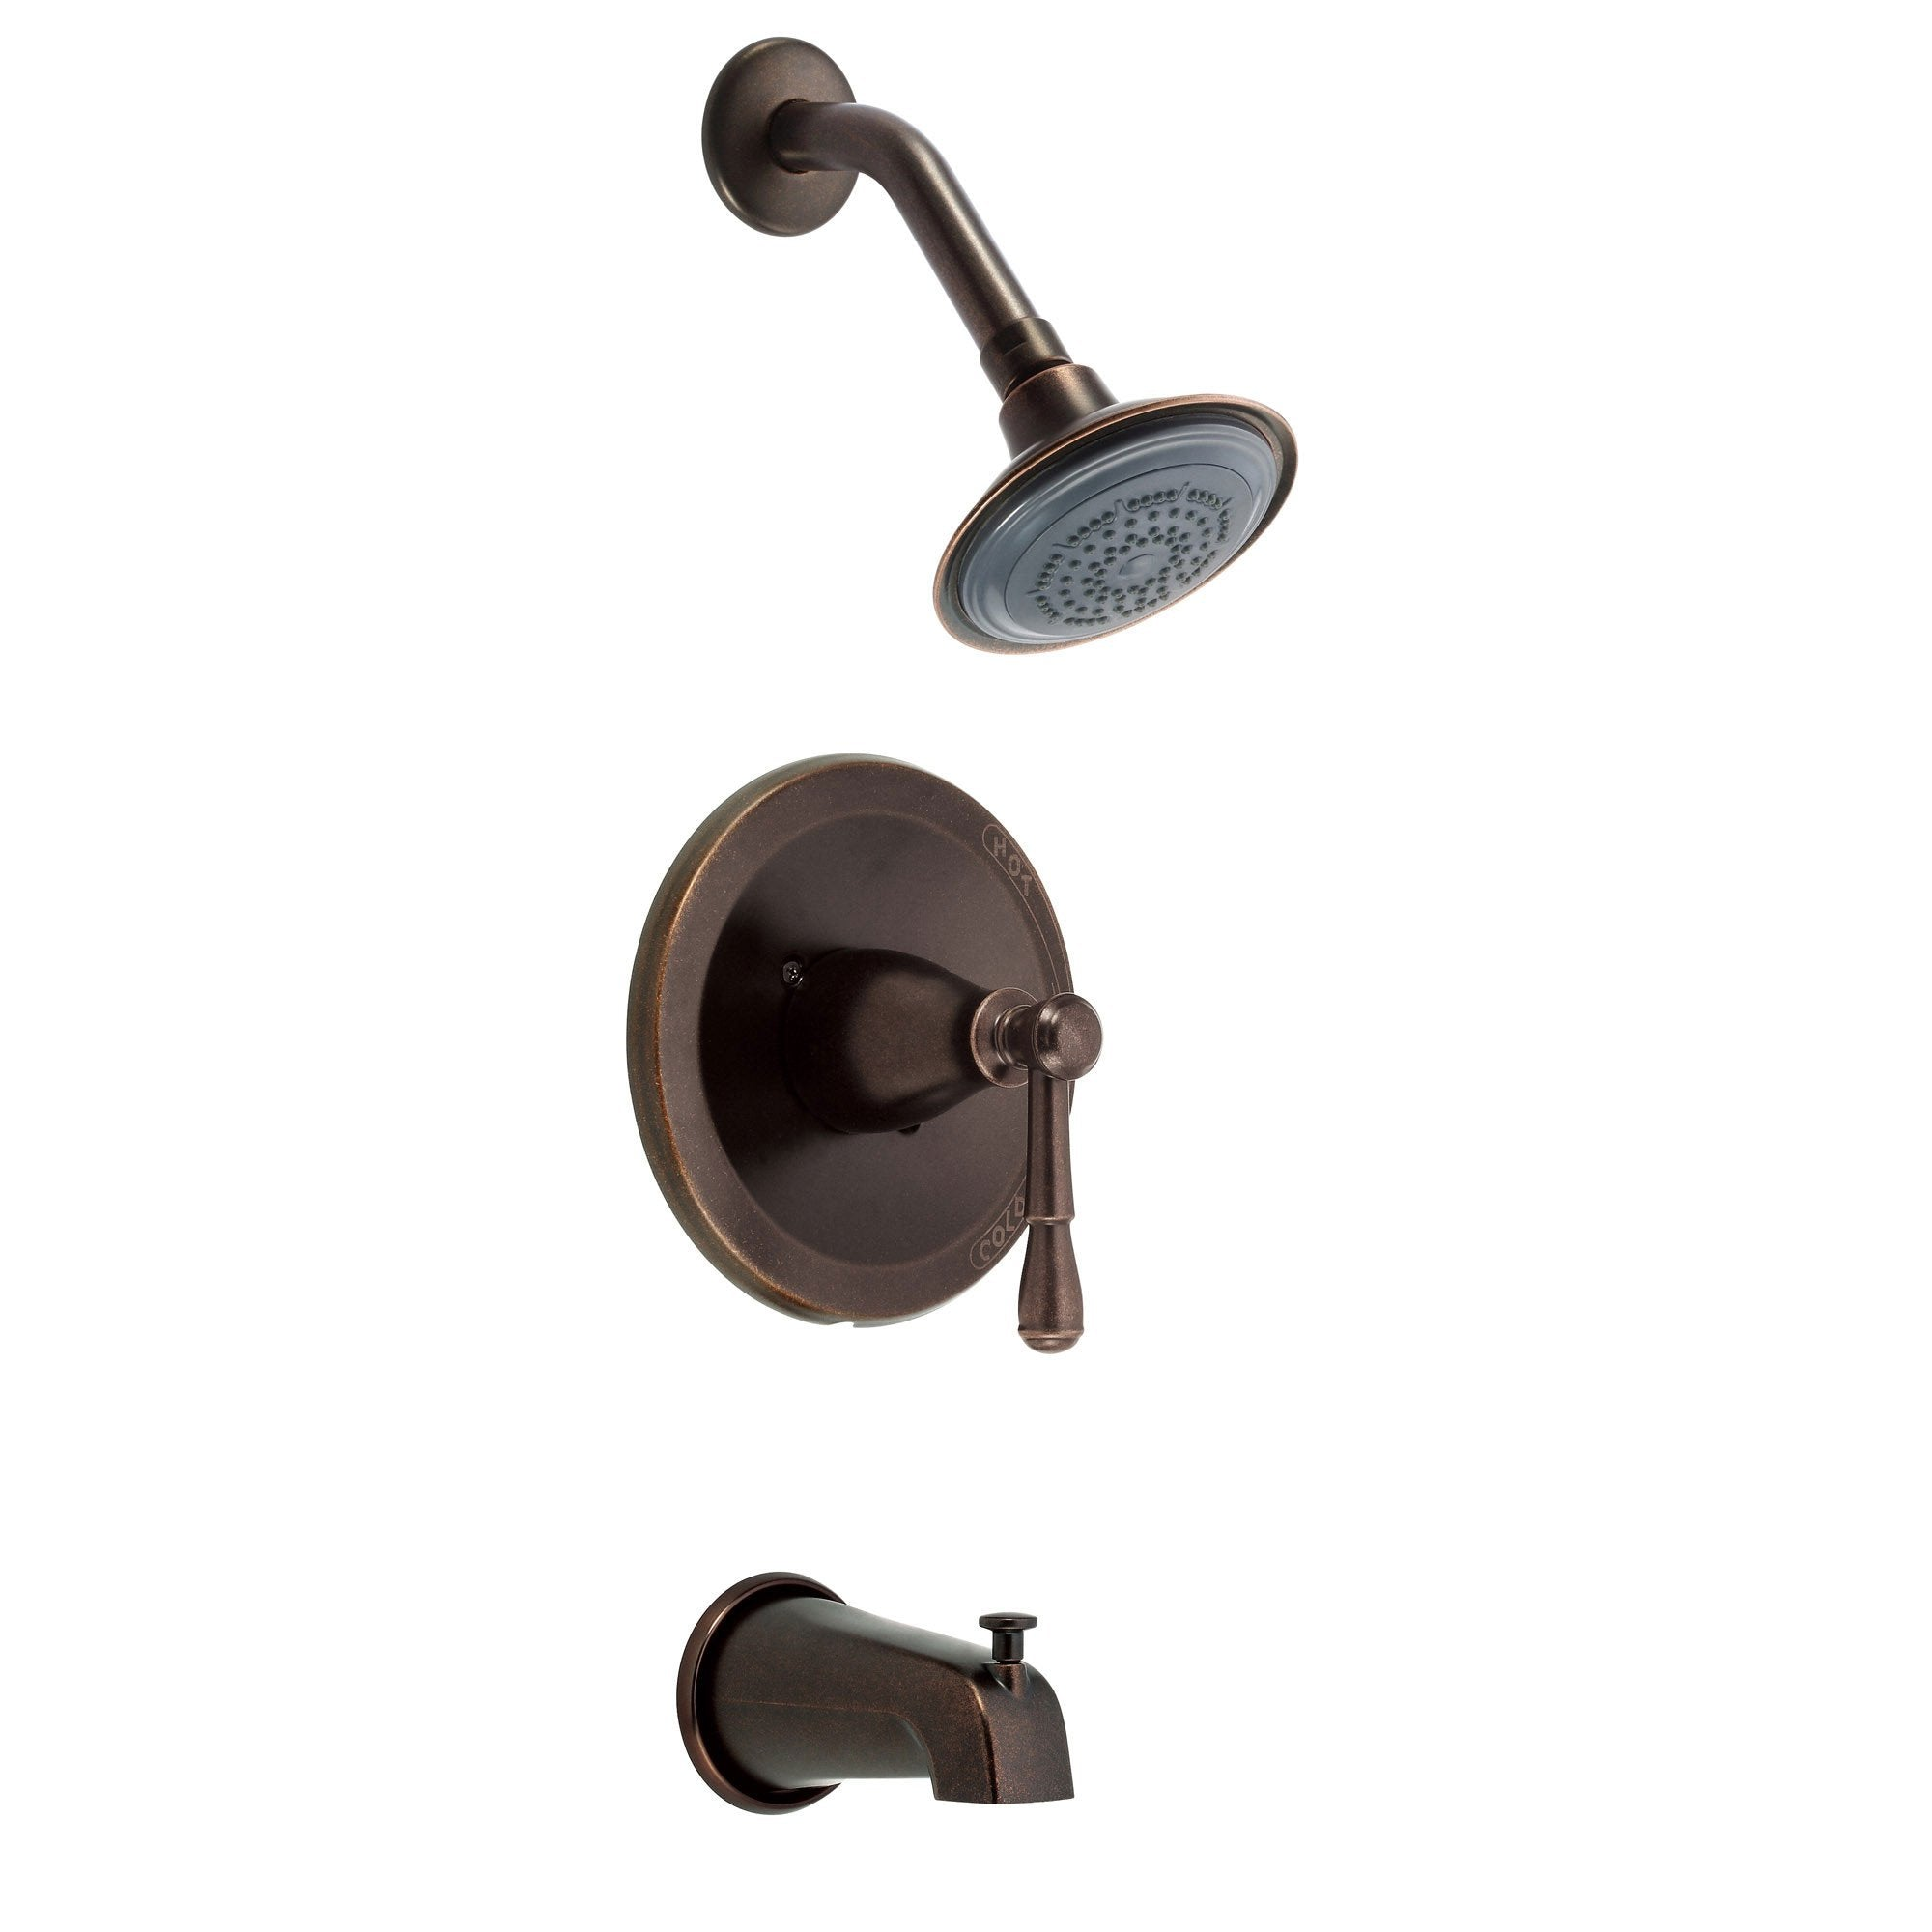 Danze Eastham Tumbled Bronze Single Handle Tub and Shower Combo Faucet INCLUDES Rough-in Valve